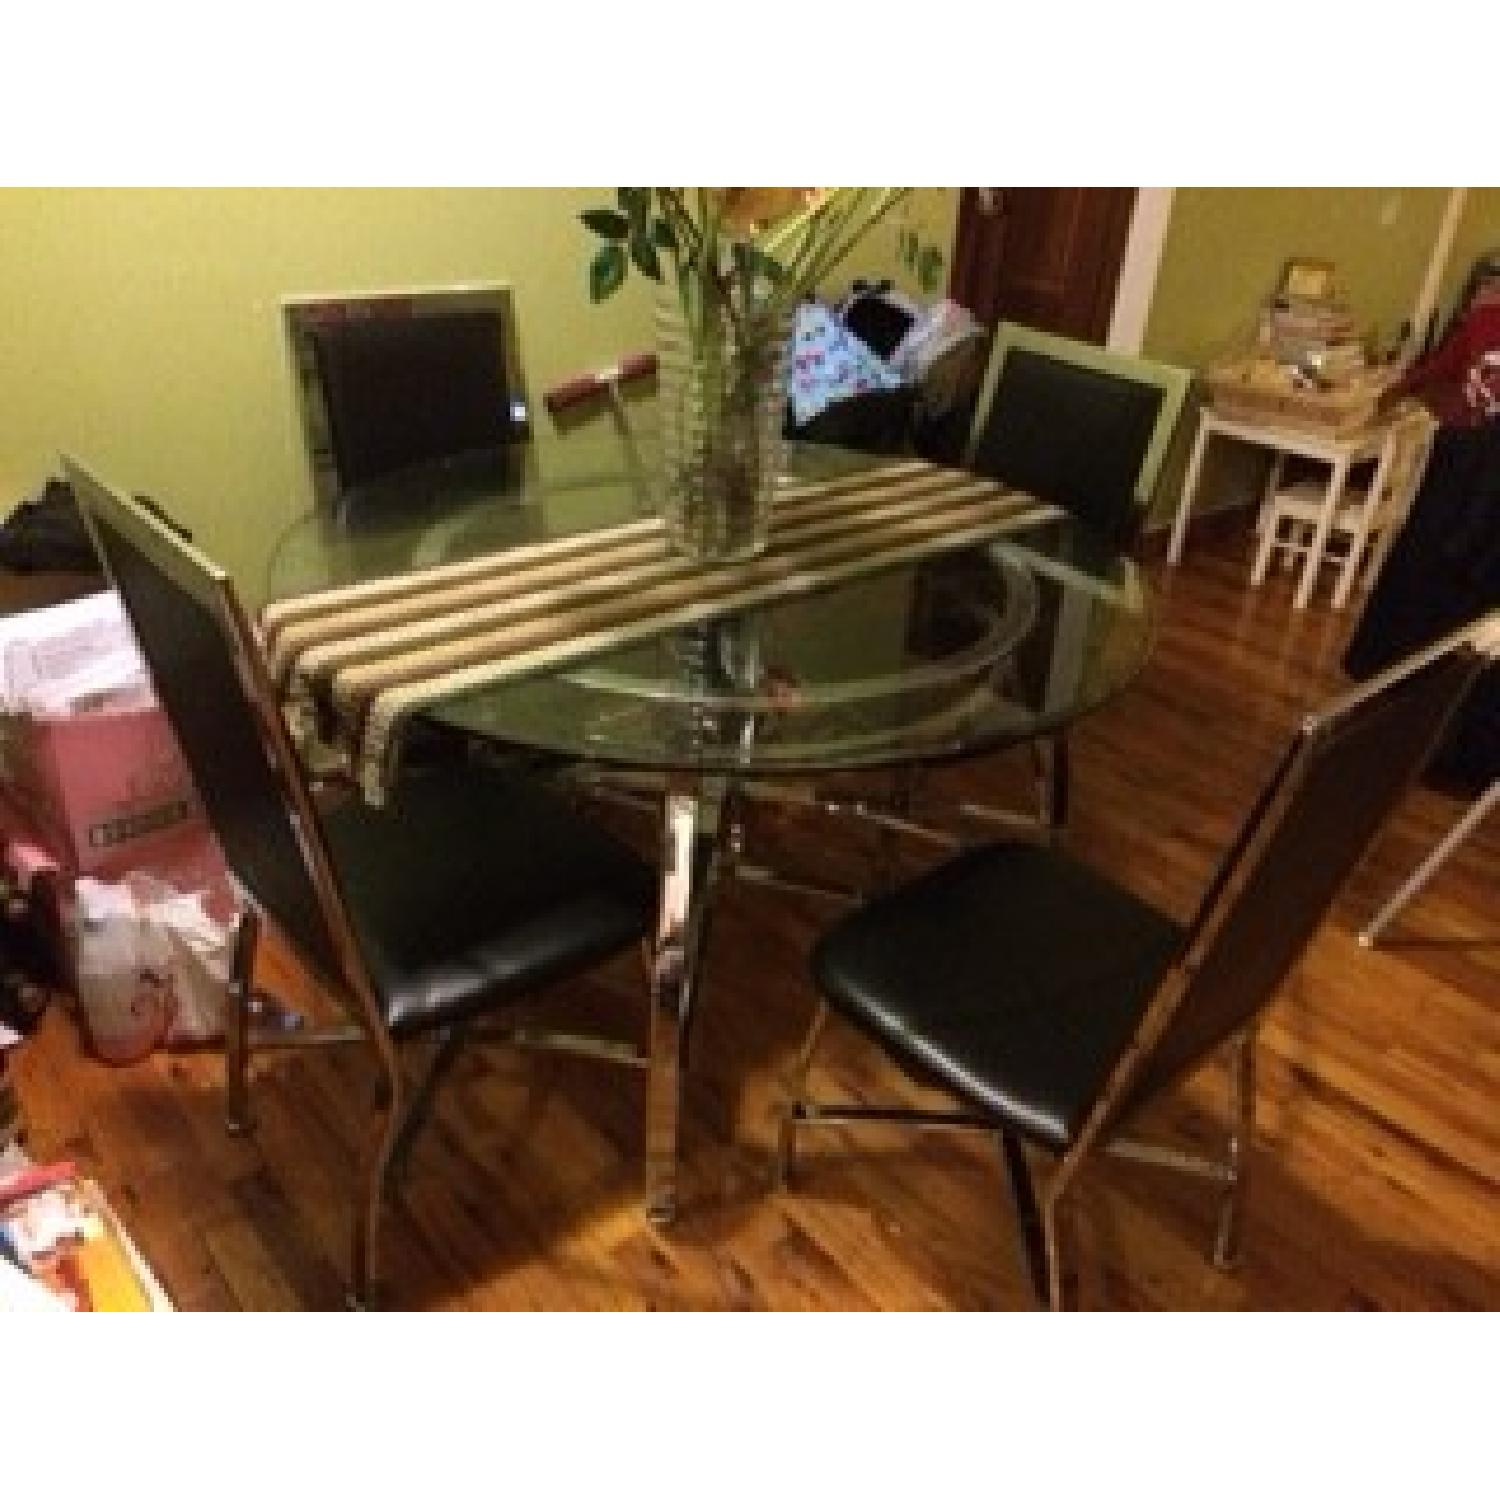 Round Glass Table Dining Table w/ 4 Chairs - image-1